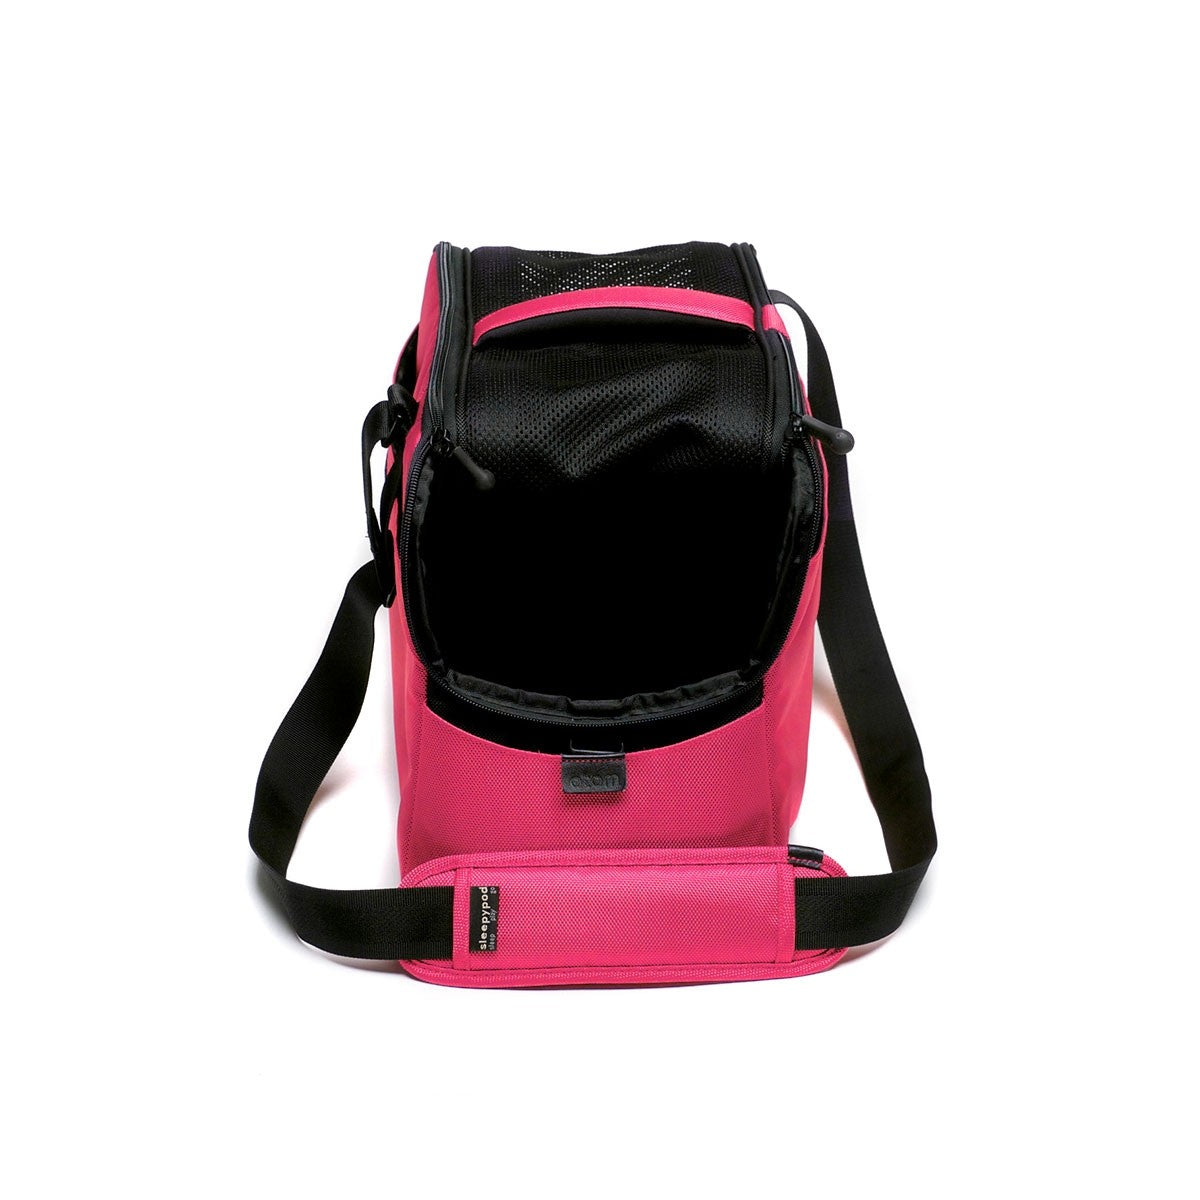 Atom Pet Carrier: Blossom Pink